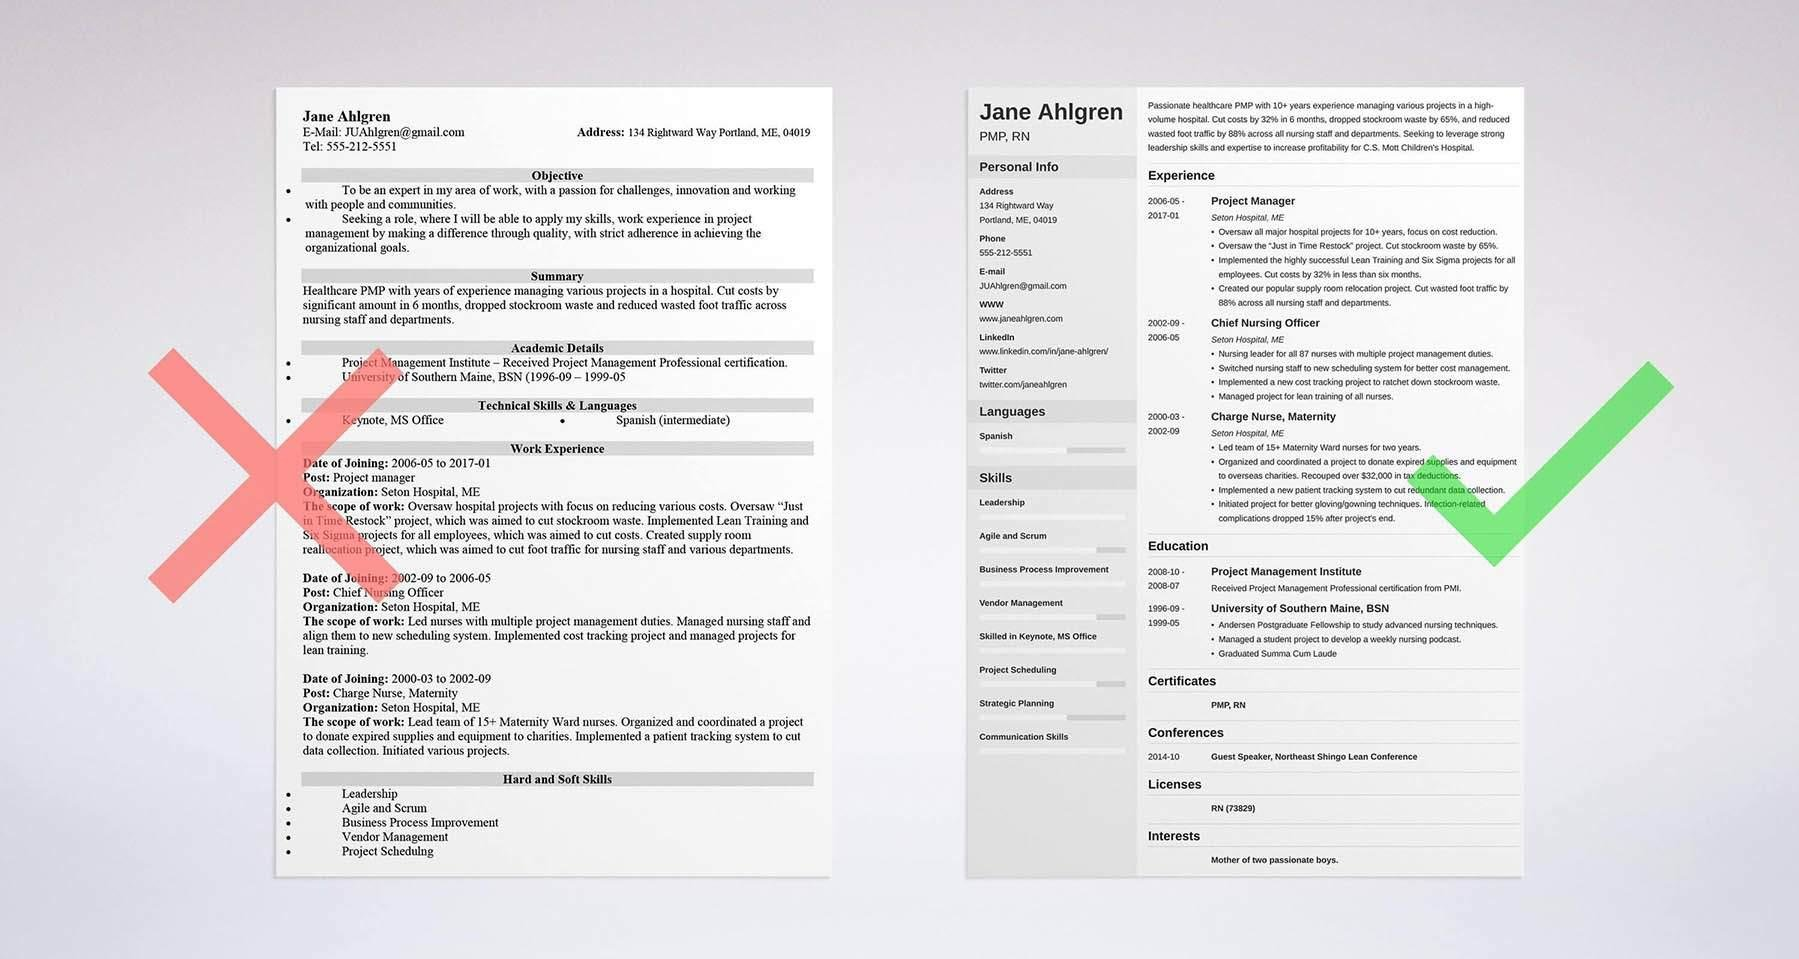 sample resume templates - How To Write A Resume For The First Time